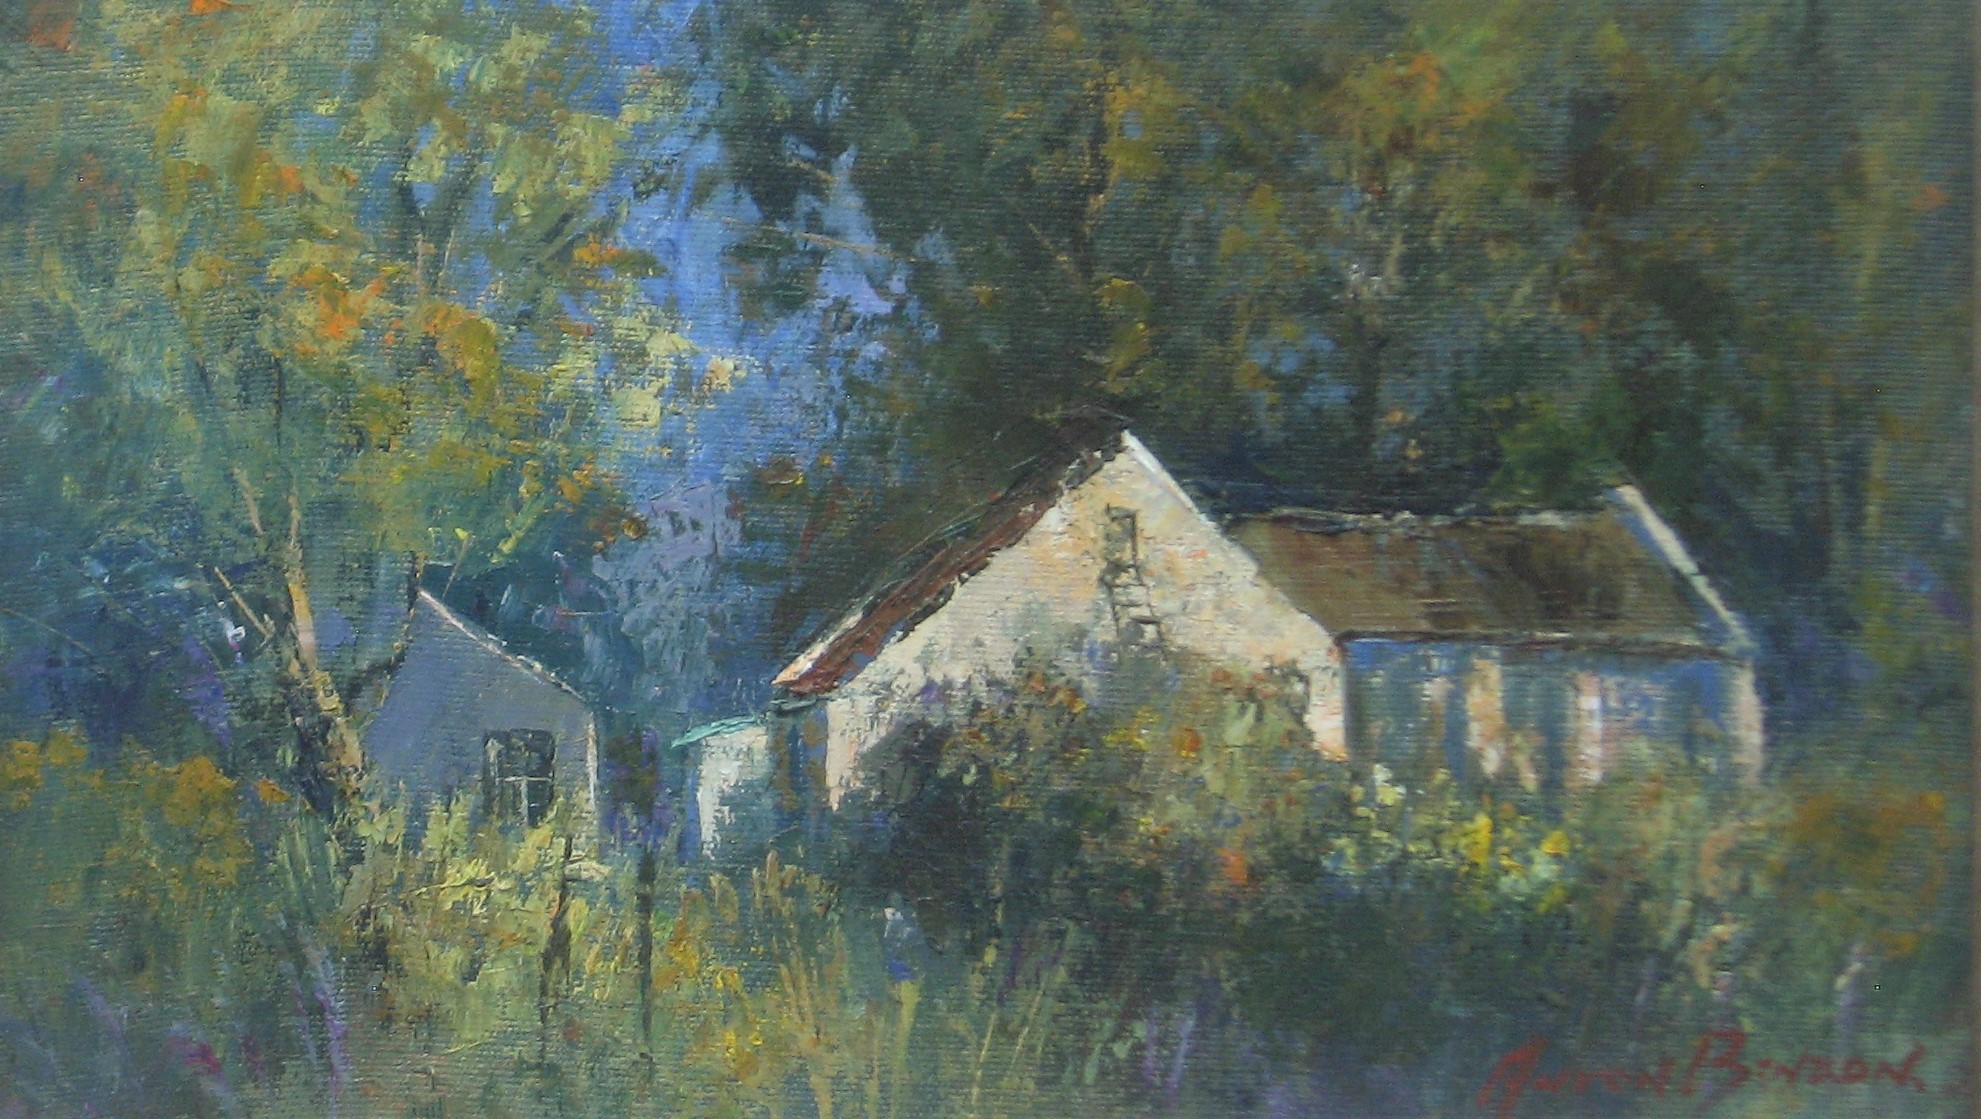 Anton Benzon, blue, green, house in the woods, oil painting, woods, palet knife, fine art, old master, old masters, anton, benzon, tree, trees, landscape, land, scape, mountain, mountains, anton benzon for sale, anton benzon south african art, south african artist, anton benzon best prices, anton benzon prices, anton benzon oil artist, art gallery, crouse art gallery, art dealers